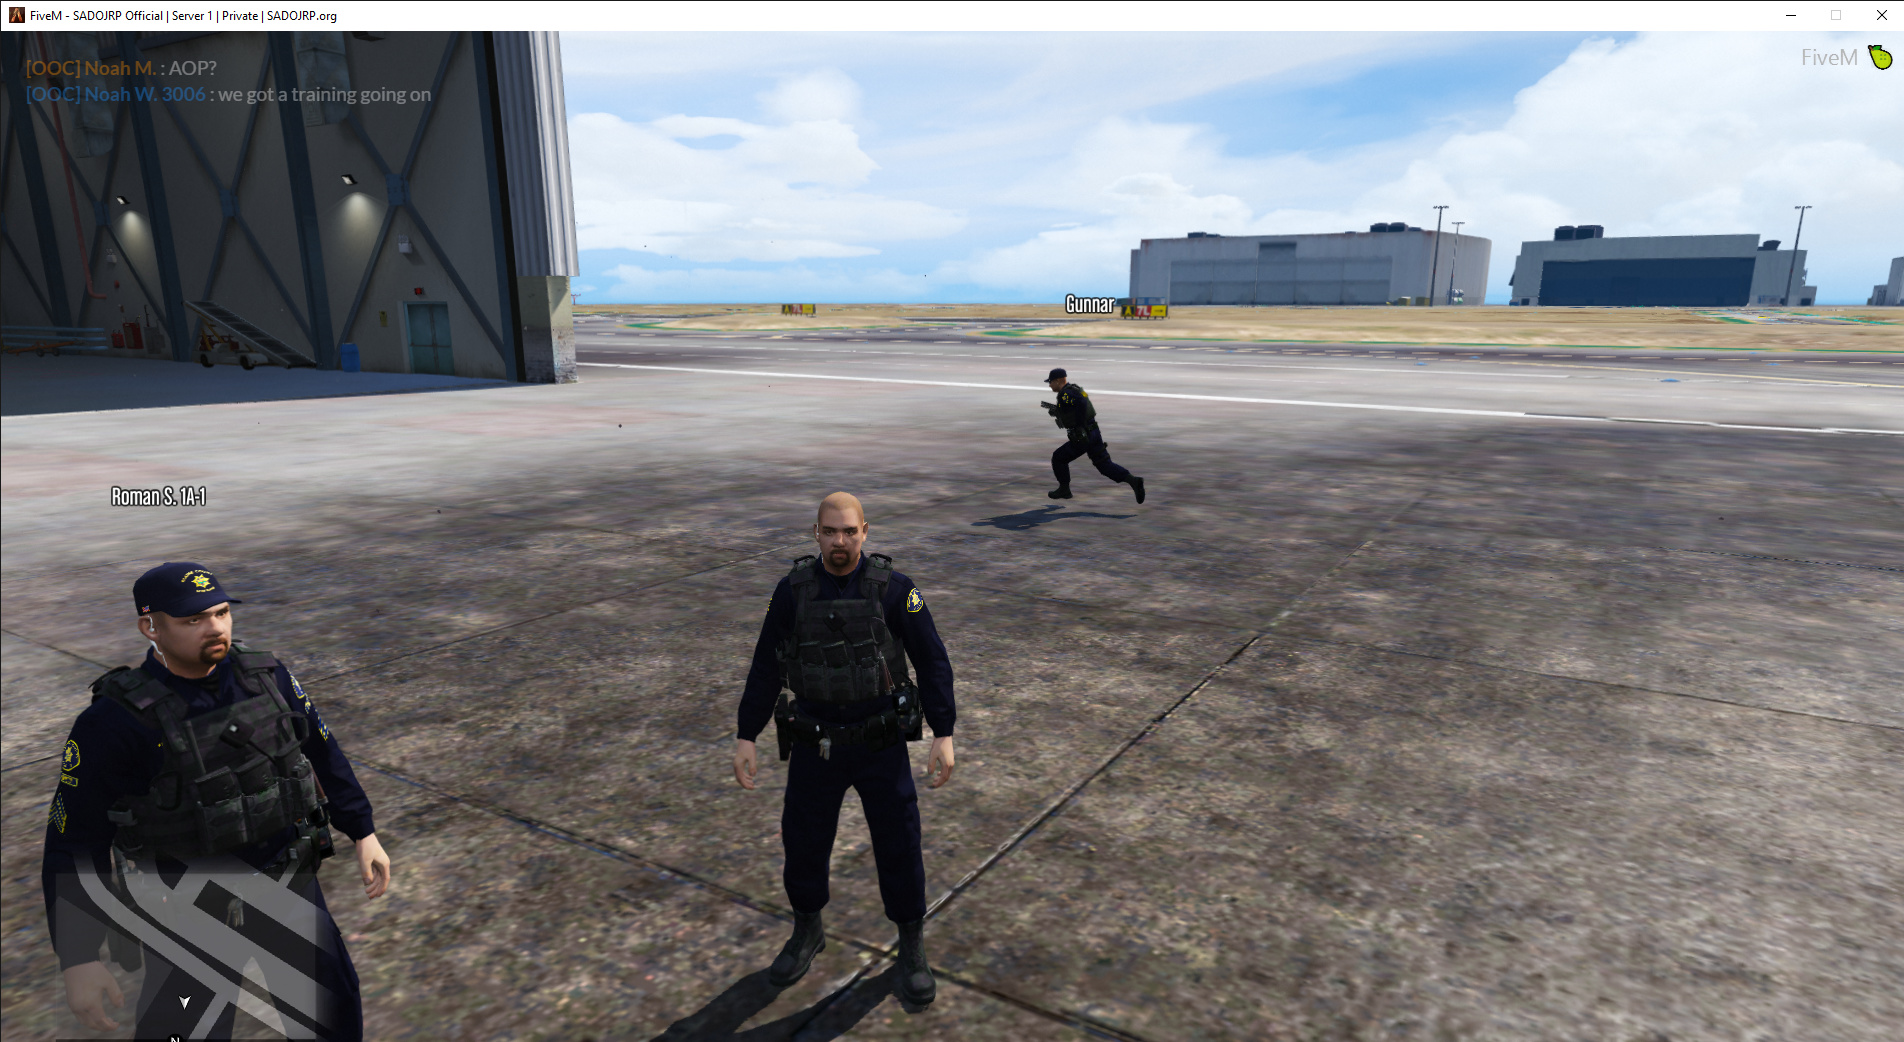 I am trying to find were I can download DOJ sheriff skin